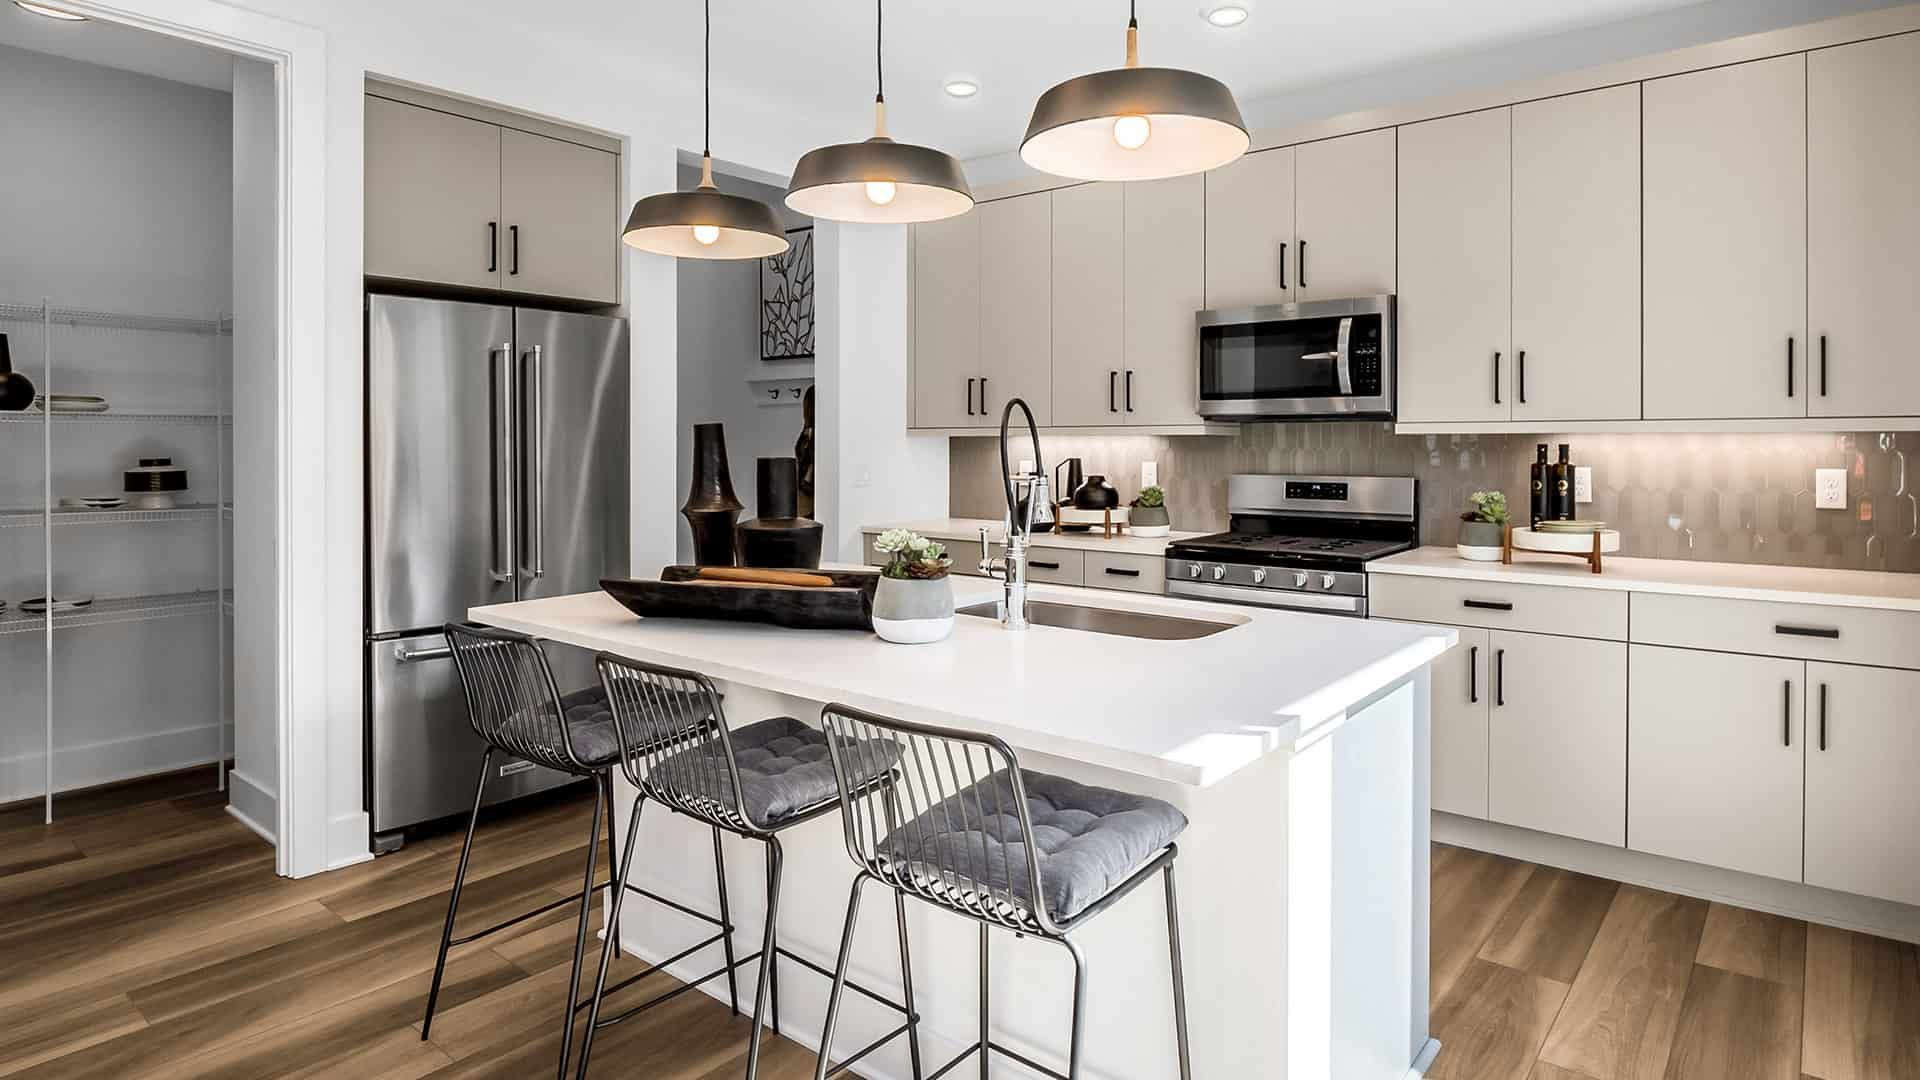 Kitchen featured in the Plan A-260 By Tri Pointe Homes in Bremerton, WA